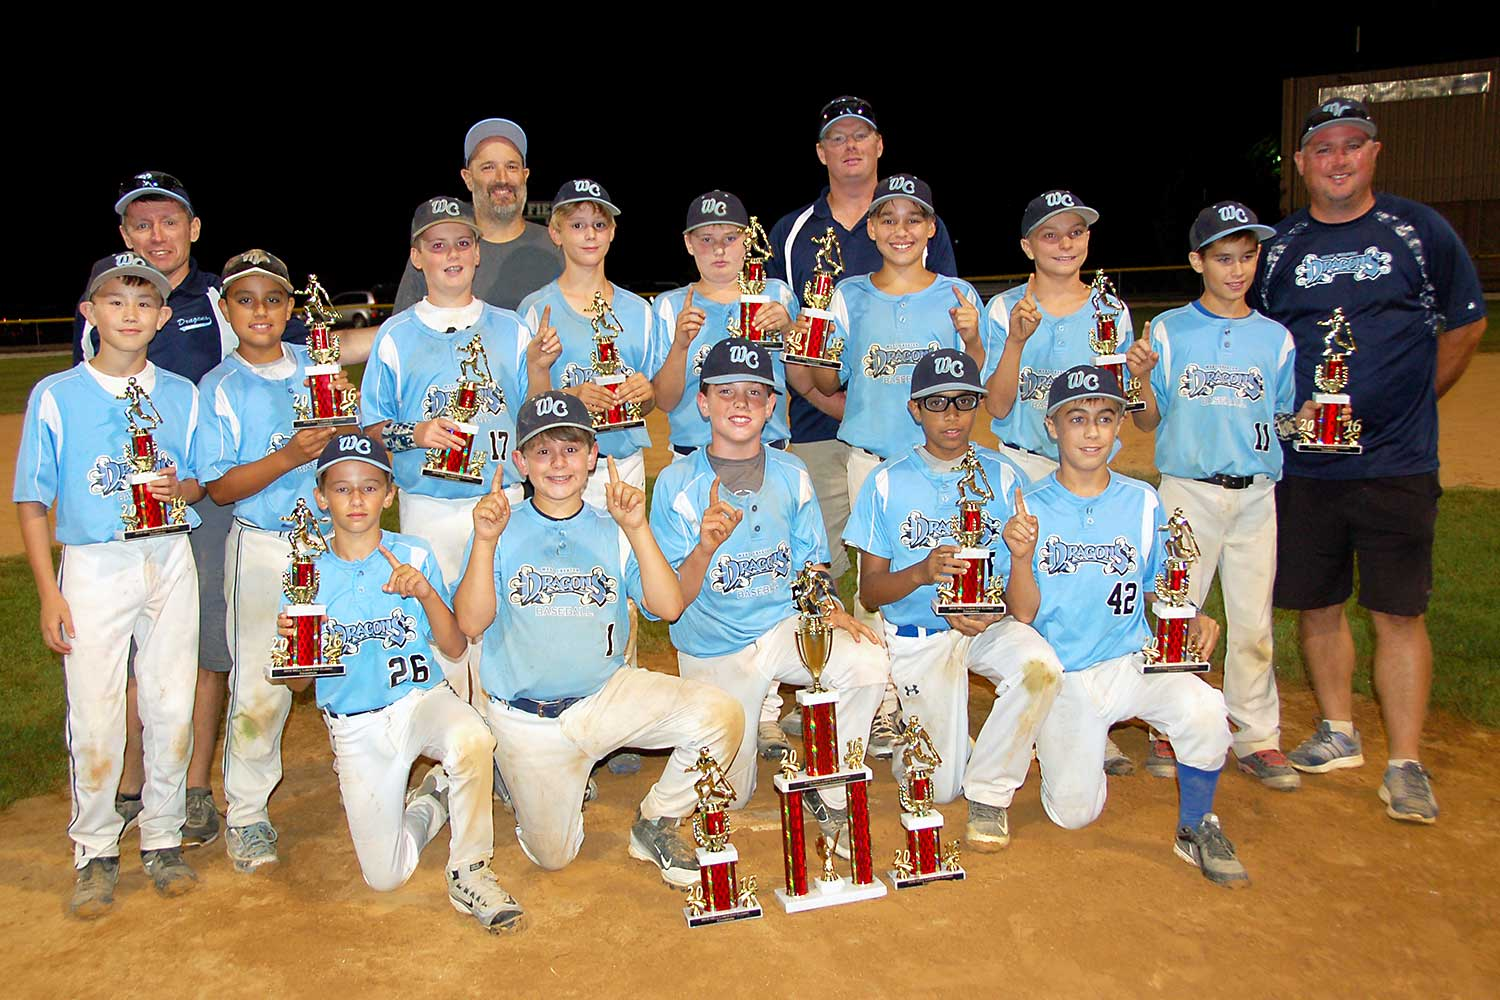 12U West Chester Dragons AL win the NELL Labor Day Classic 2016 Tournament in September 2016